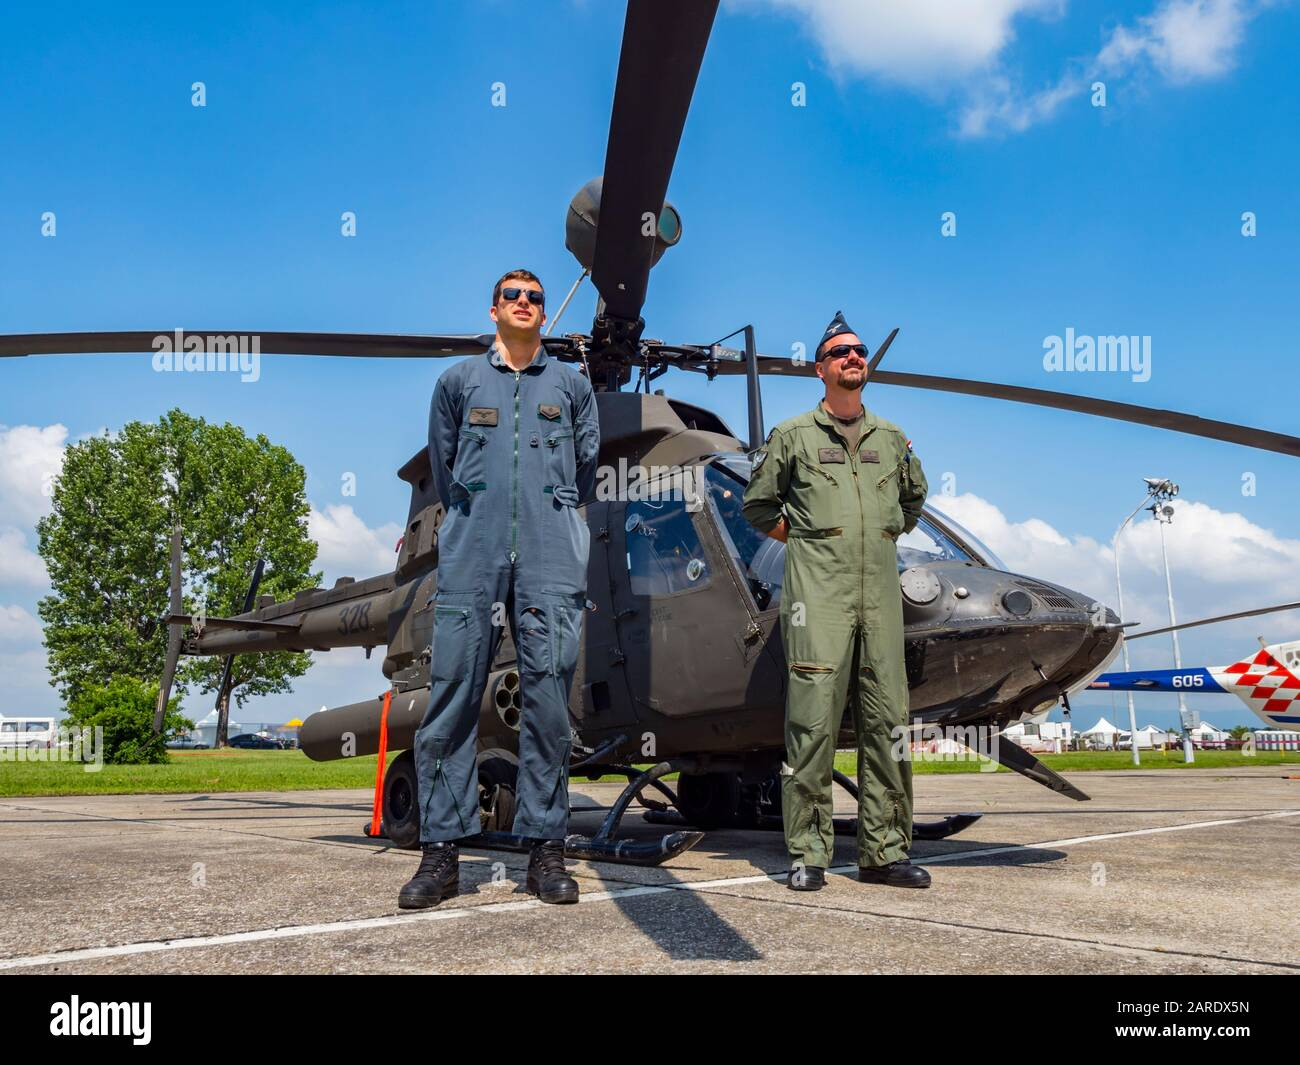 Kiowa Warrior OH-58D helicopter OH58D HRZ Croatian Air Force crew posing pose standing Stock Photo